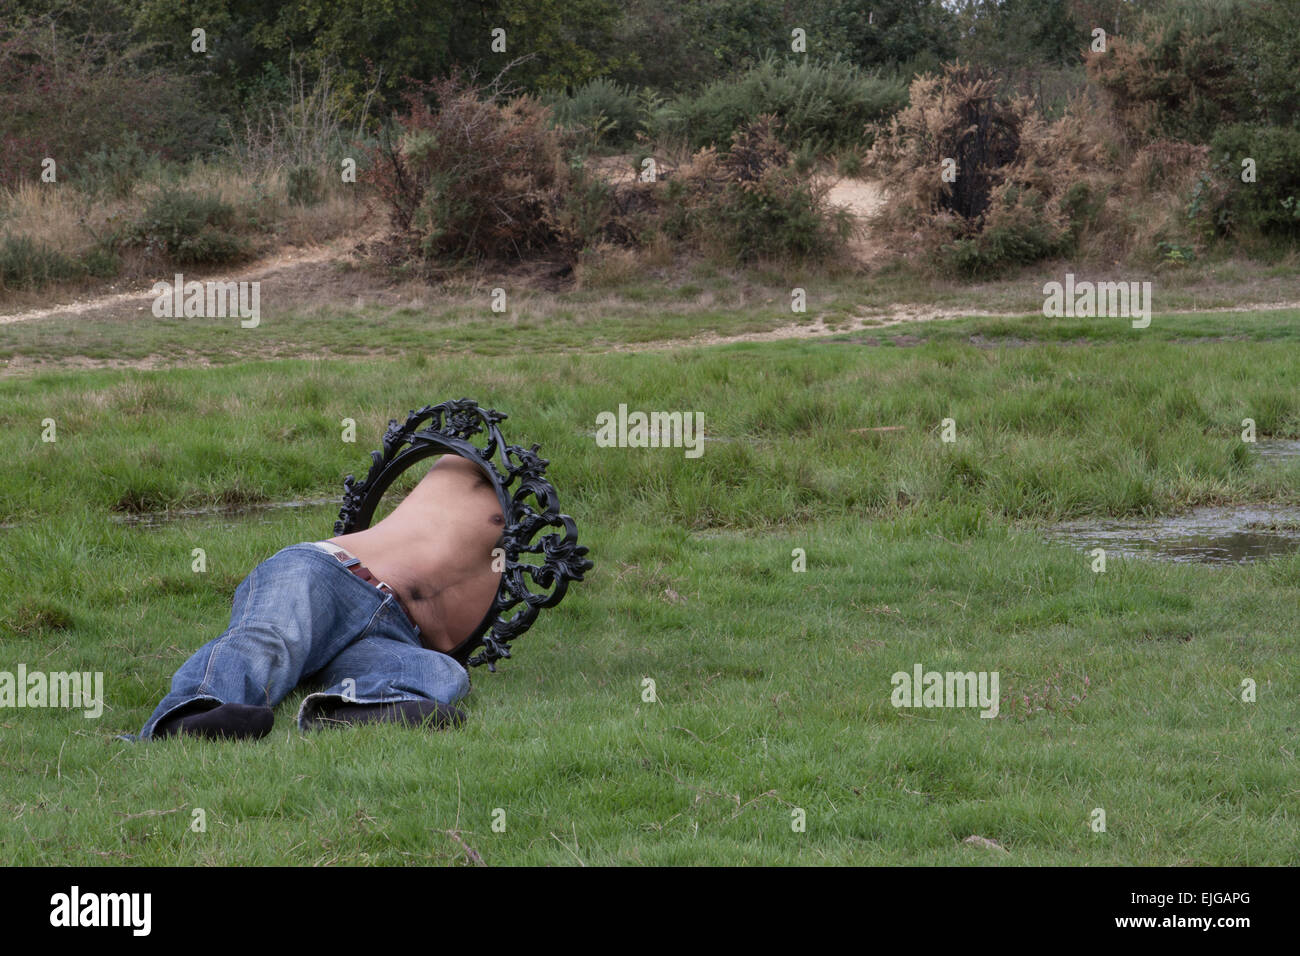 the scape, the scaping man, man on the forest, man in the frame, hombre en un cuadro, el escape, hombre en el escape, - Stock Image